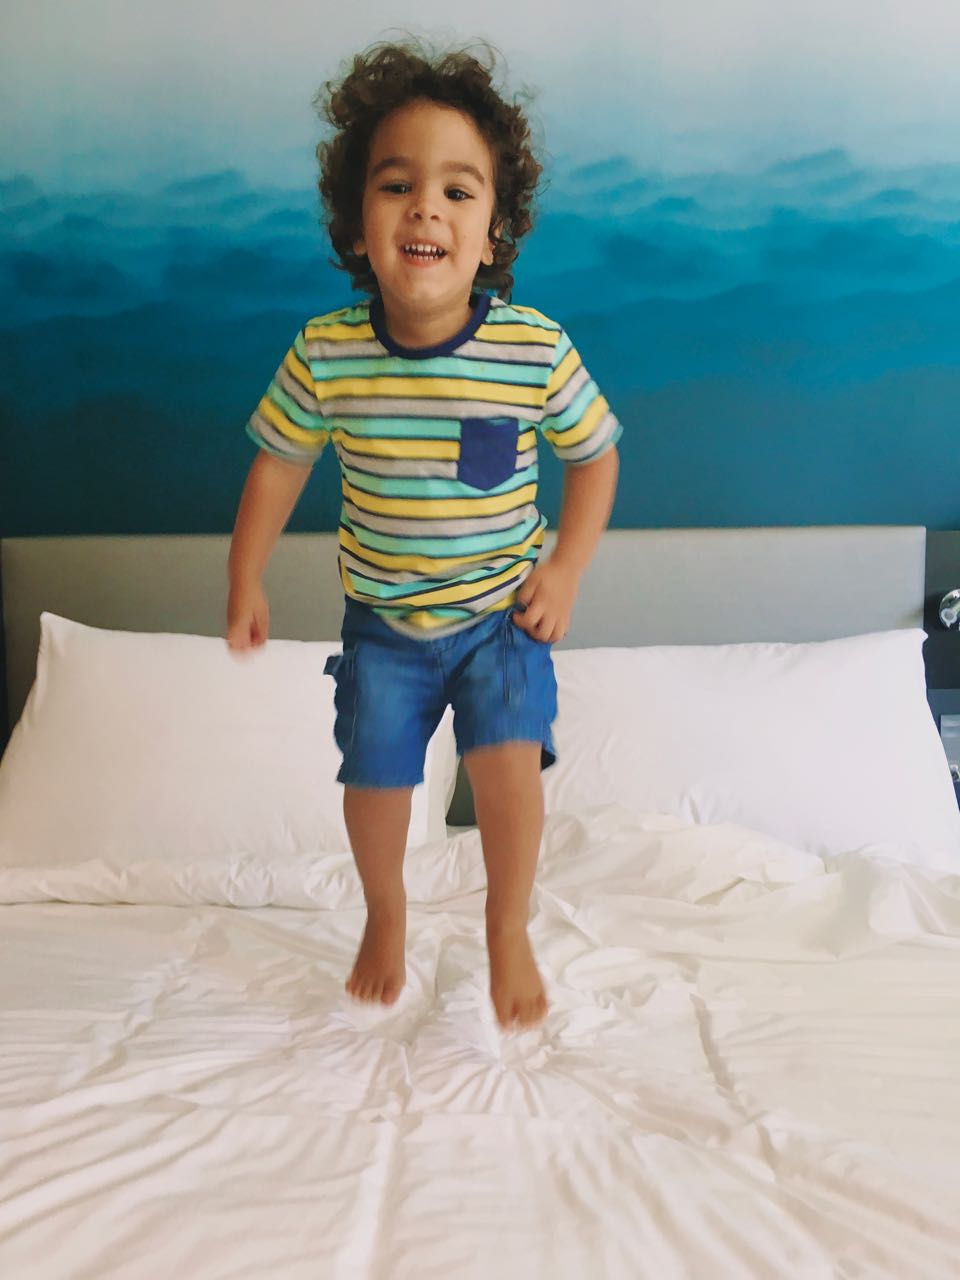 Caleb Jumping on the bed, Radisson Blu Hotel and Residence